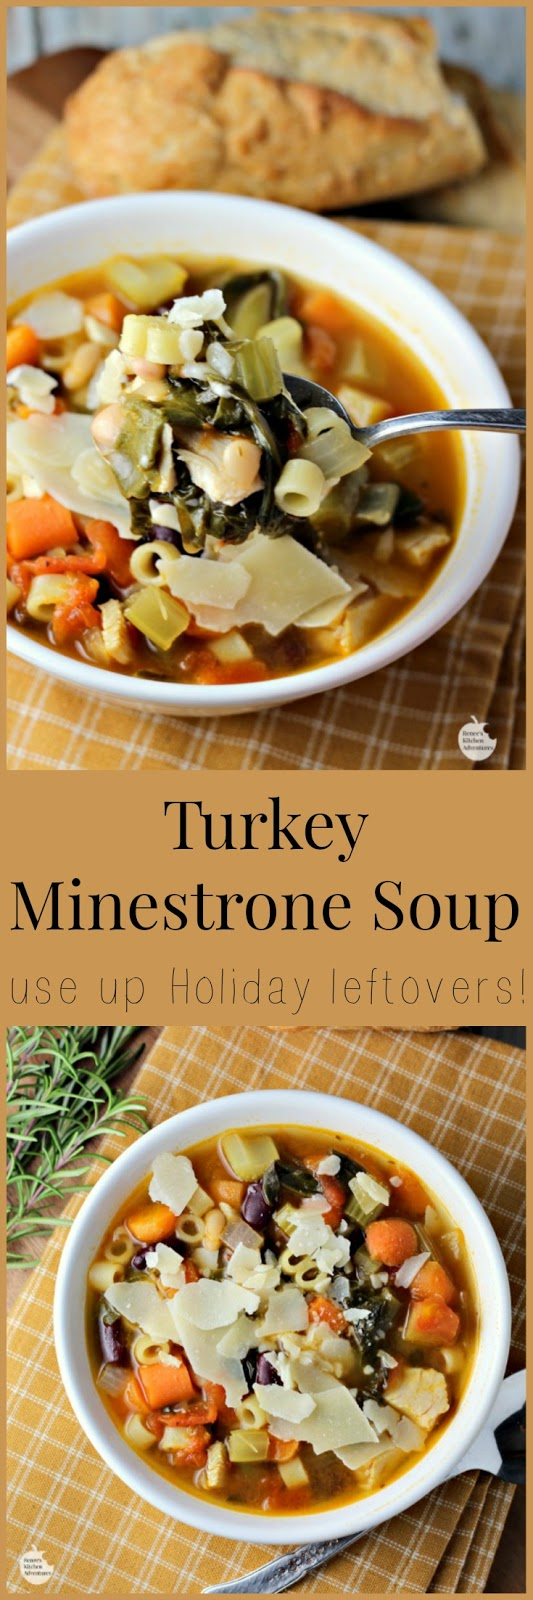 Turkey Minestrone Soup | by Renee's Kitchen Adventures - Healthy and easy recipe for a comforting soup that is made from several of your Holiday meal leftovers!  Also great meatless!